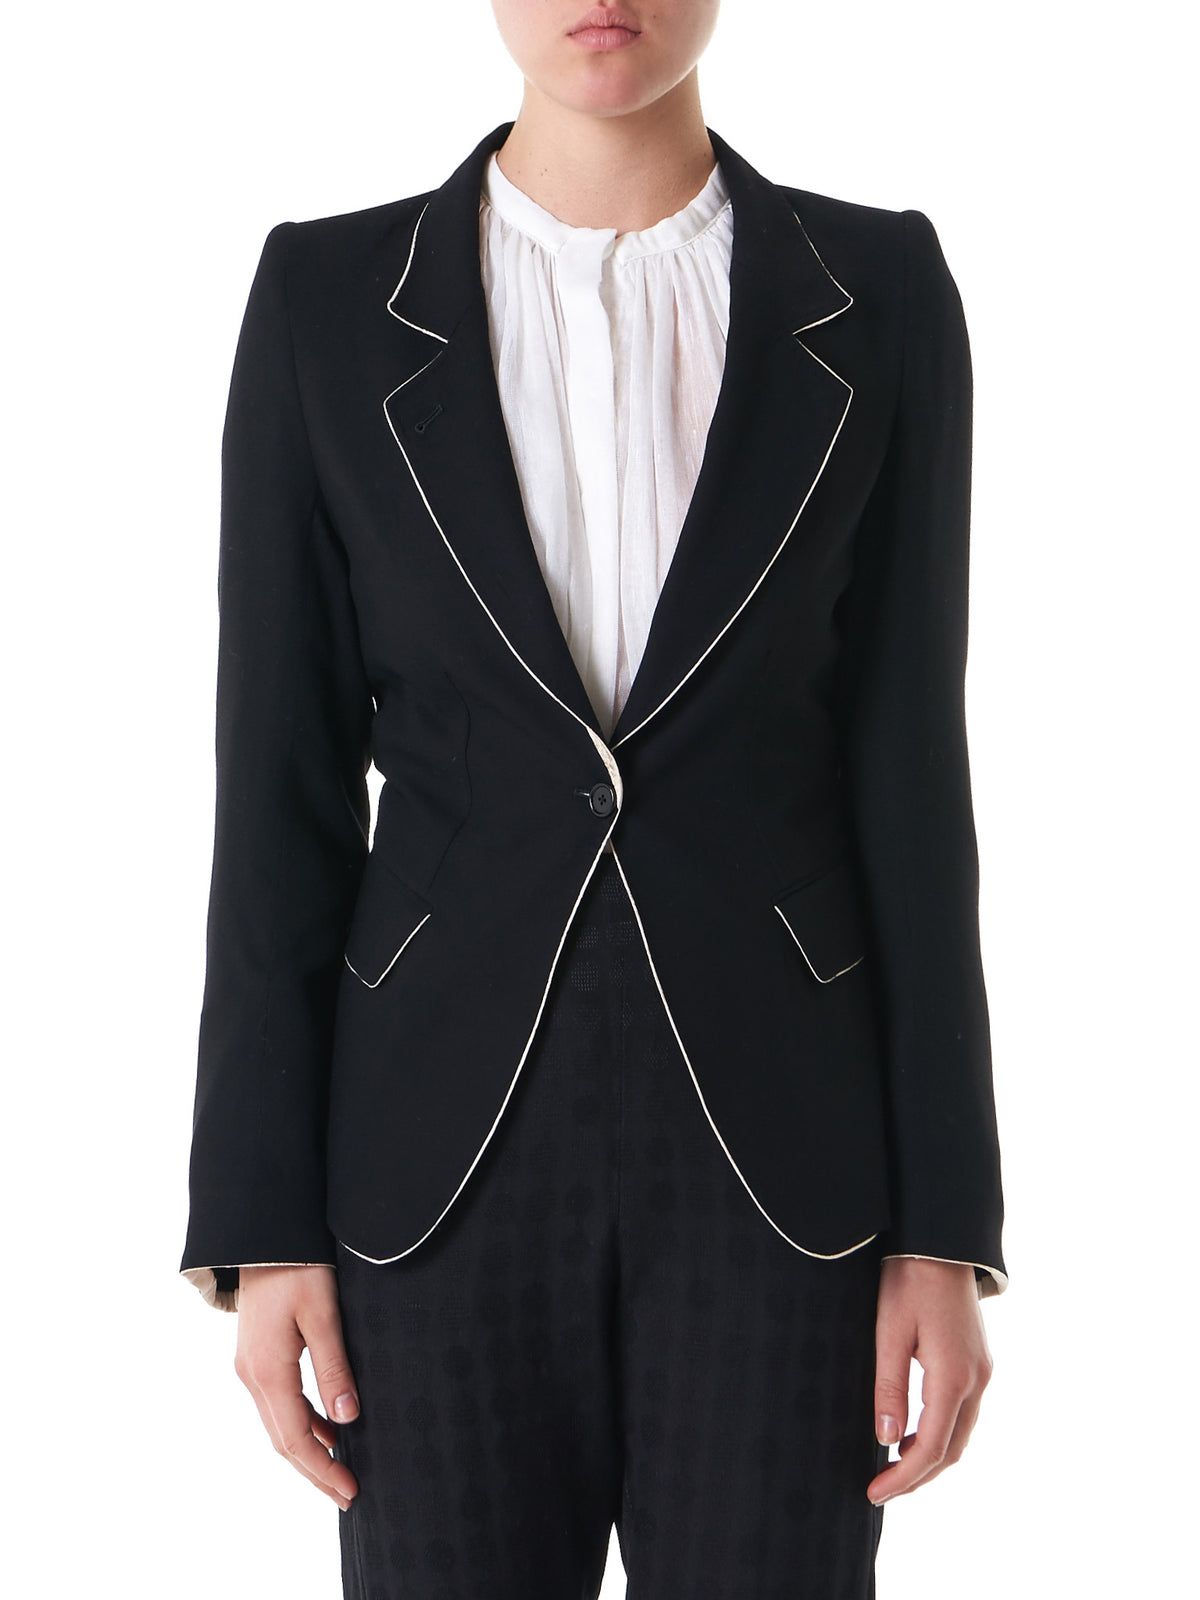 Piped-Lapel Blazer (1701-1010-170-098) - H. Lorenzo